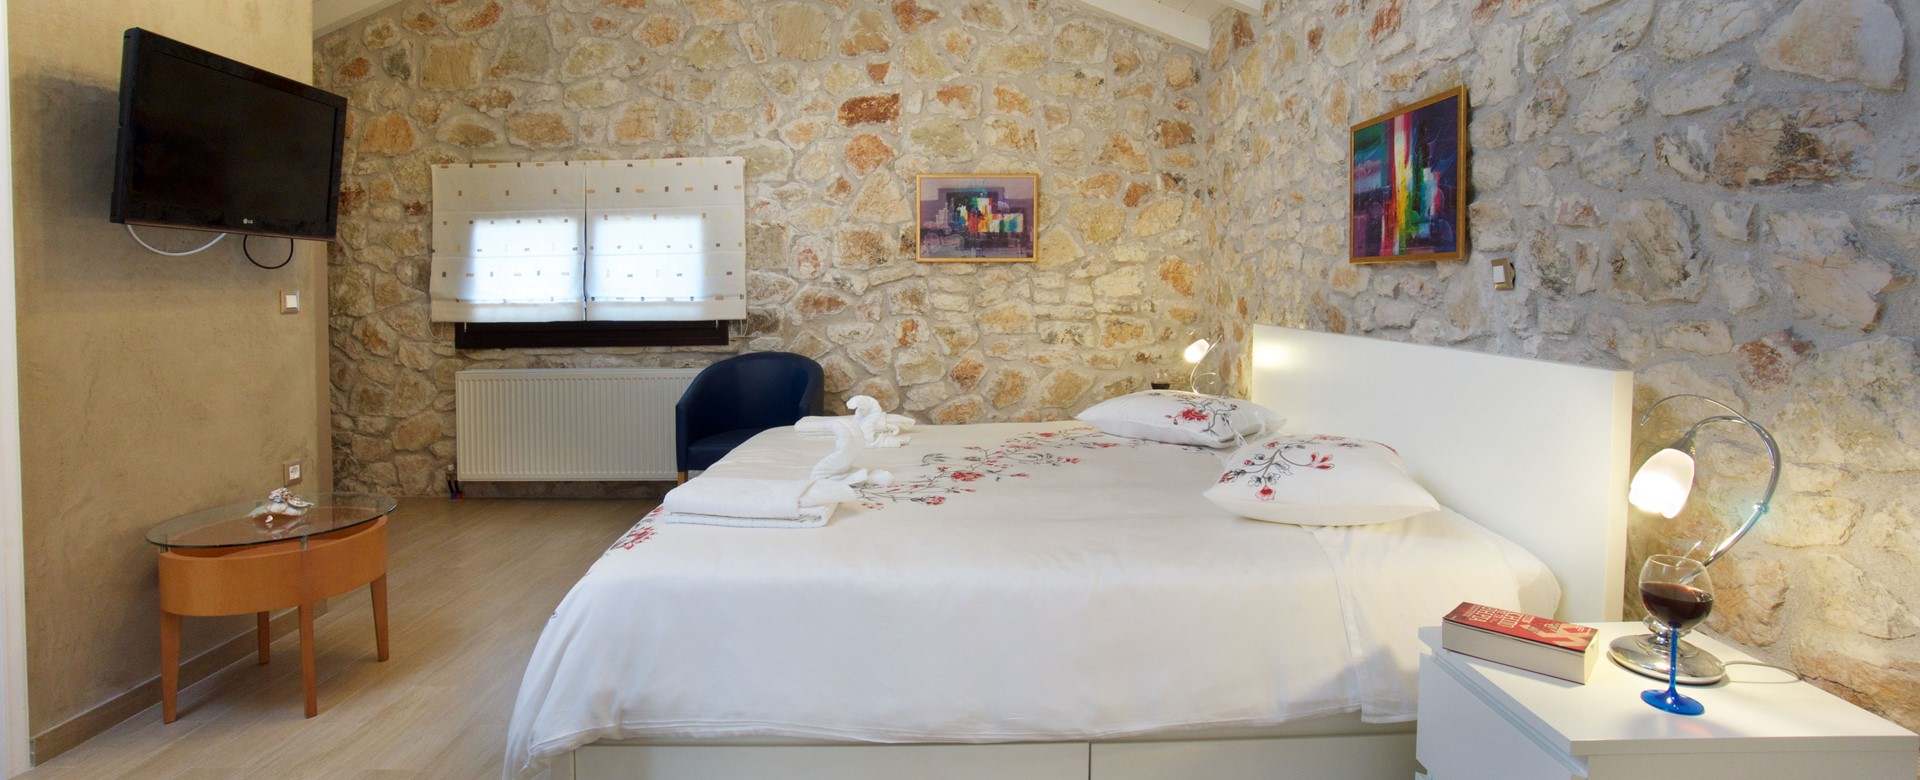 Gorgeous double bedroom with charming stone wall feature at Villa Theano, Sami, Kefalonia, Greek Islands